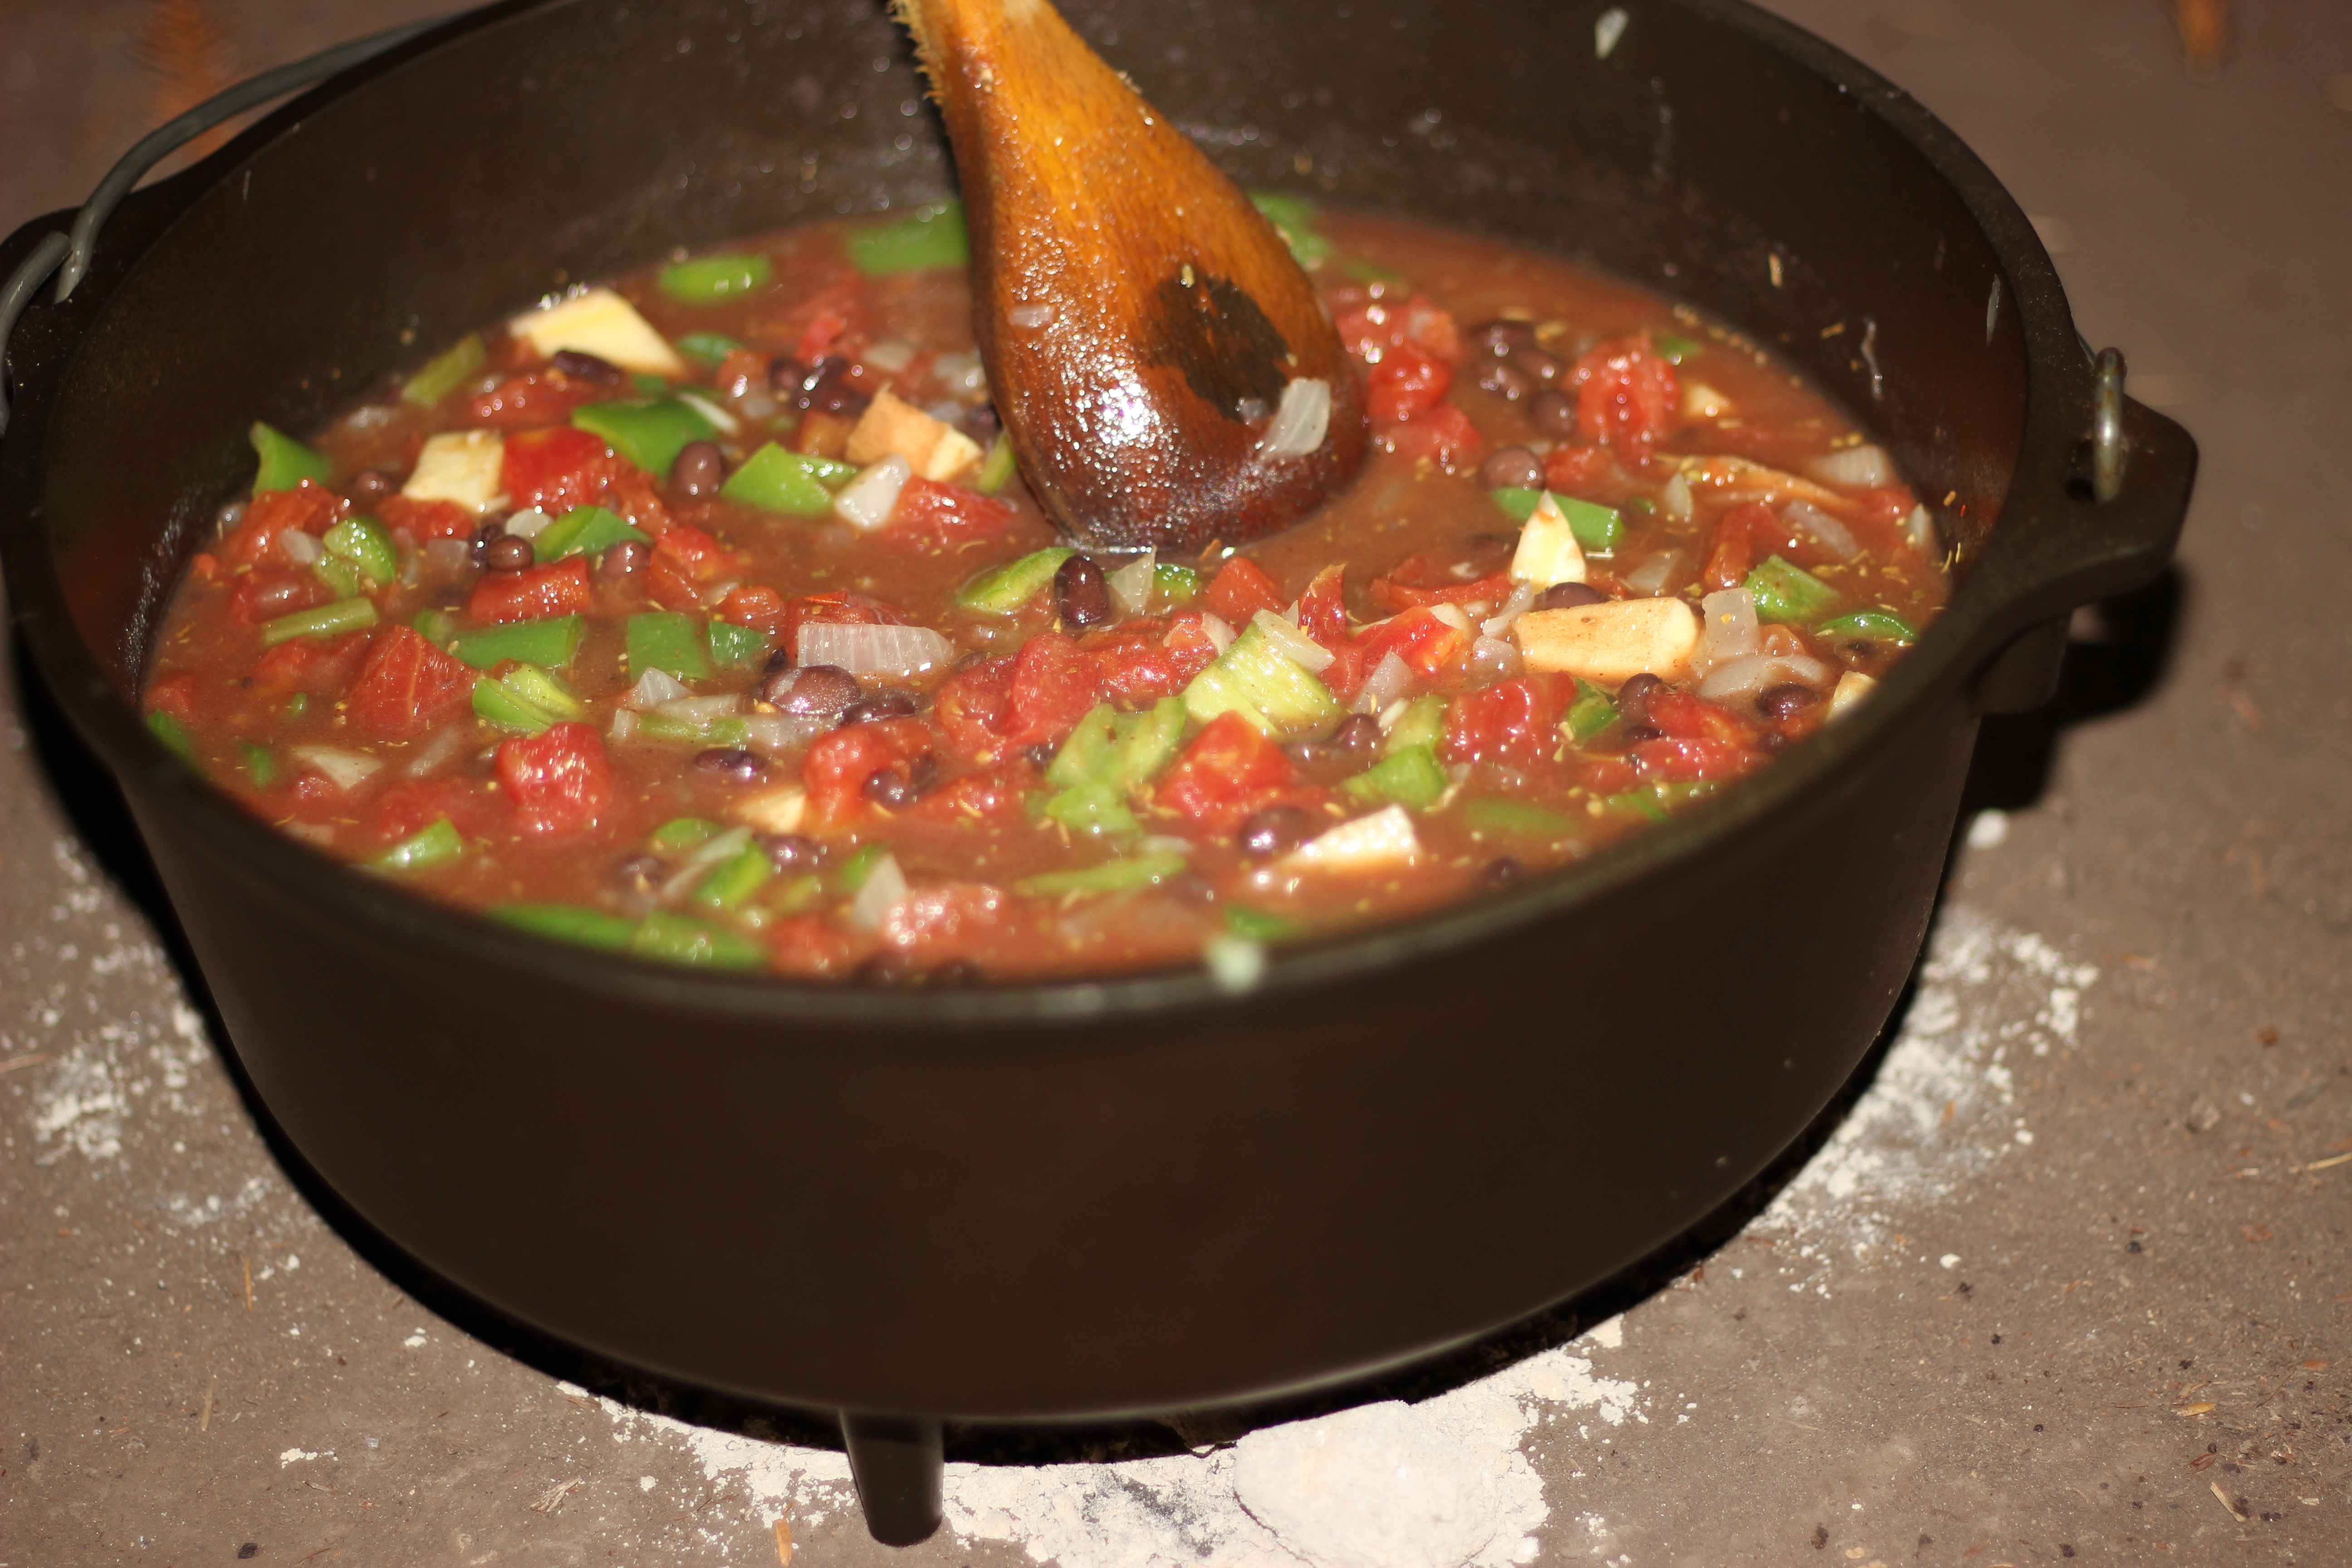 Dutch Oven Recipe: Spicy Black Bean and Sweet Potato Stew with Biscuits